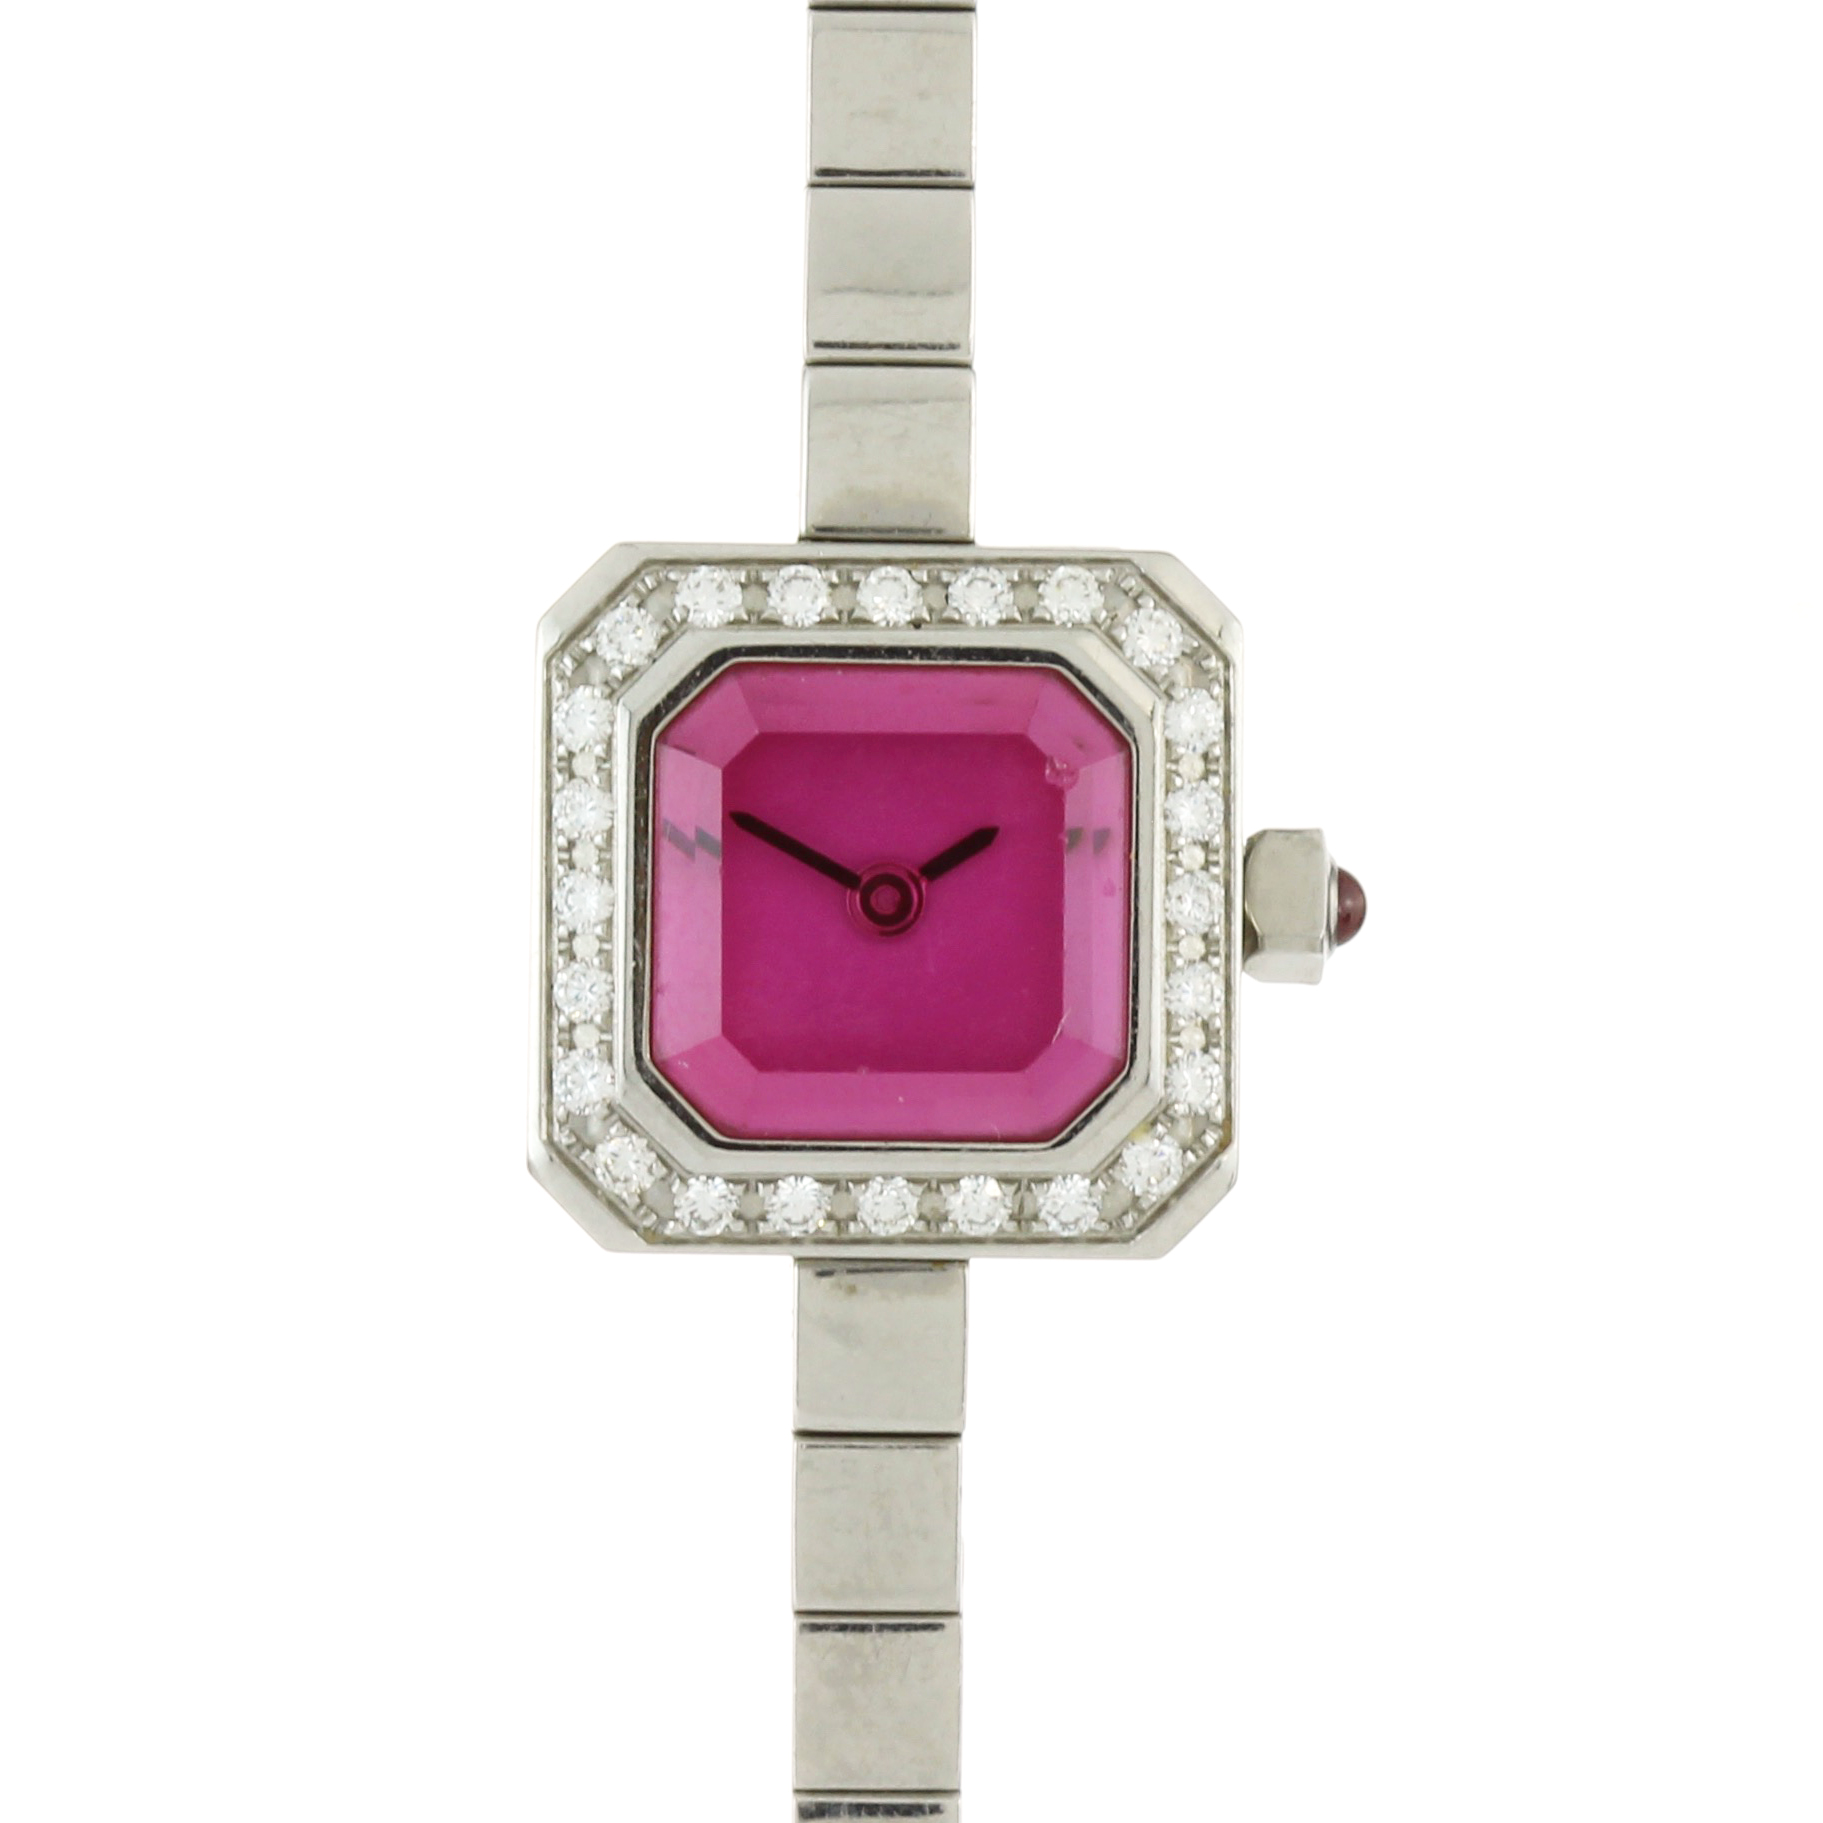 Los 218 - A stainless steel sugar cube wristwatch by Corum with pink face and jewelled with white sapphires.